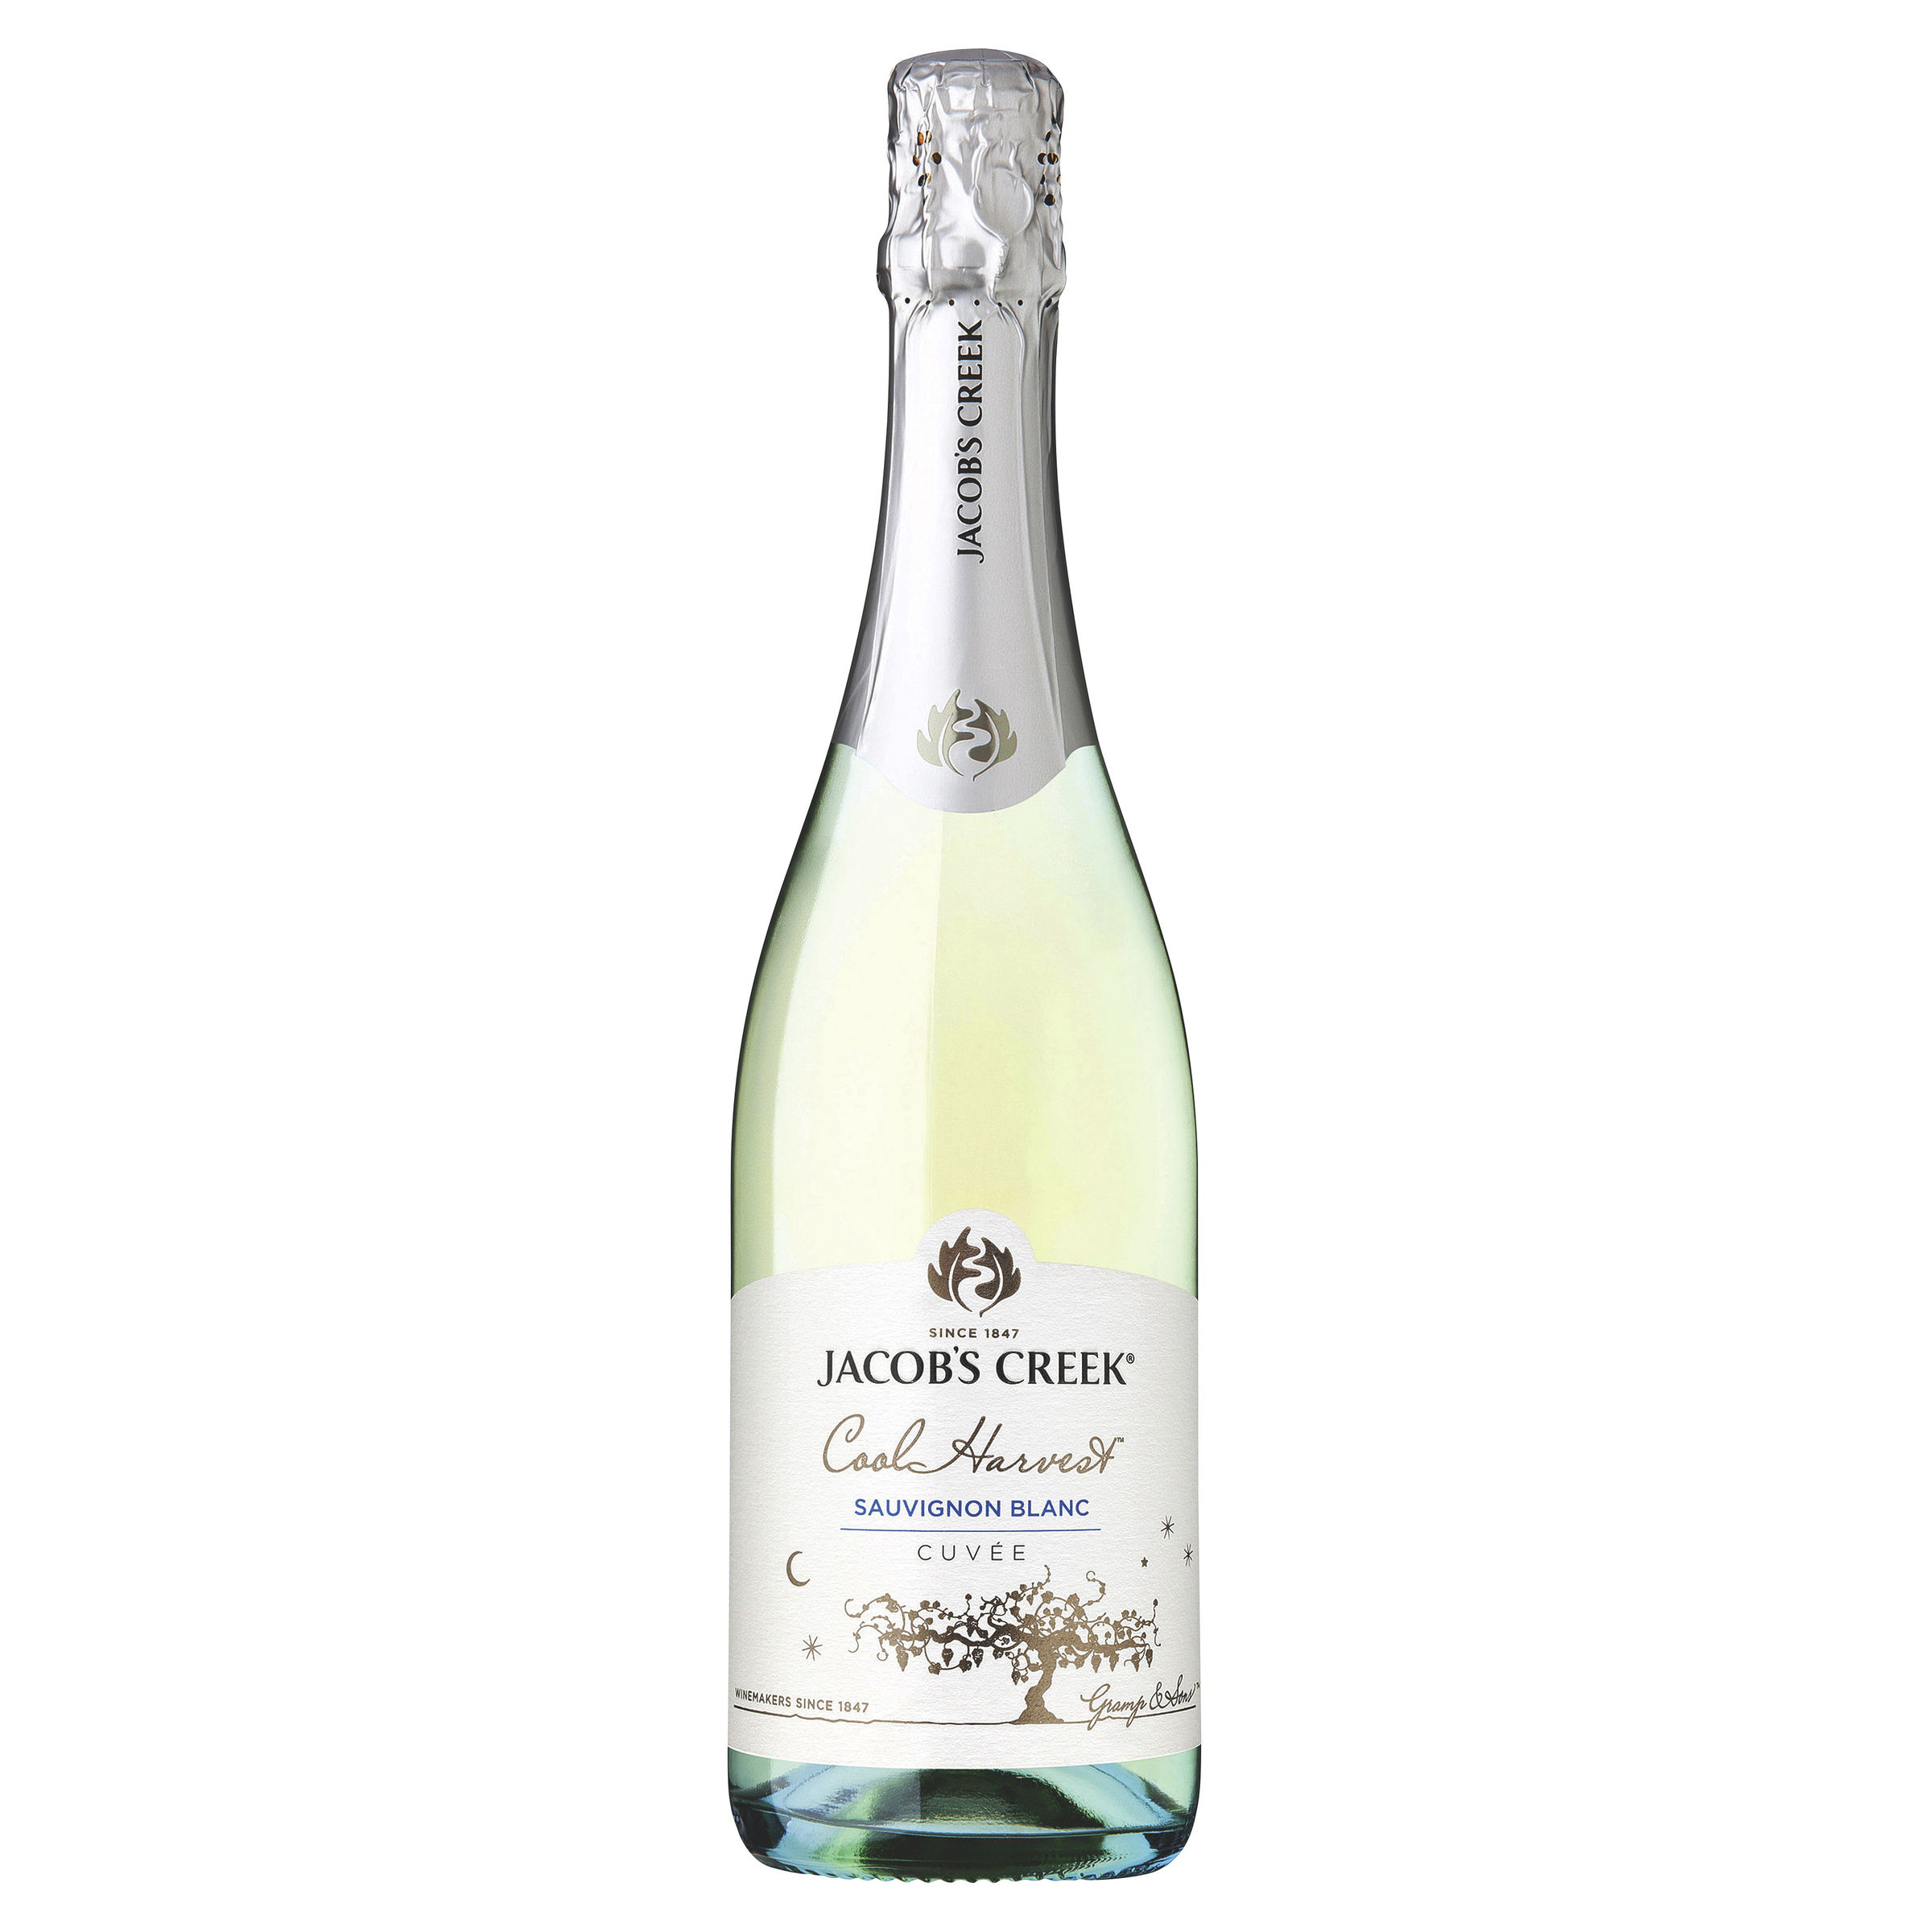 JACOBS CREEK COOL HARVEST SPARKLING SAUVIGNON BLANC